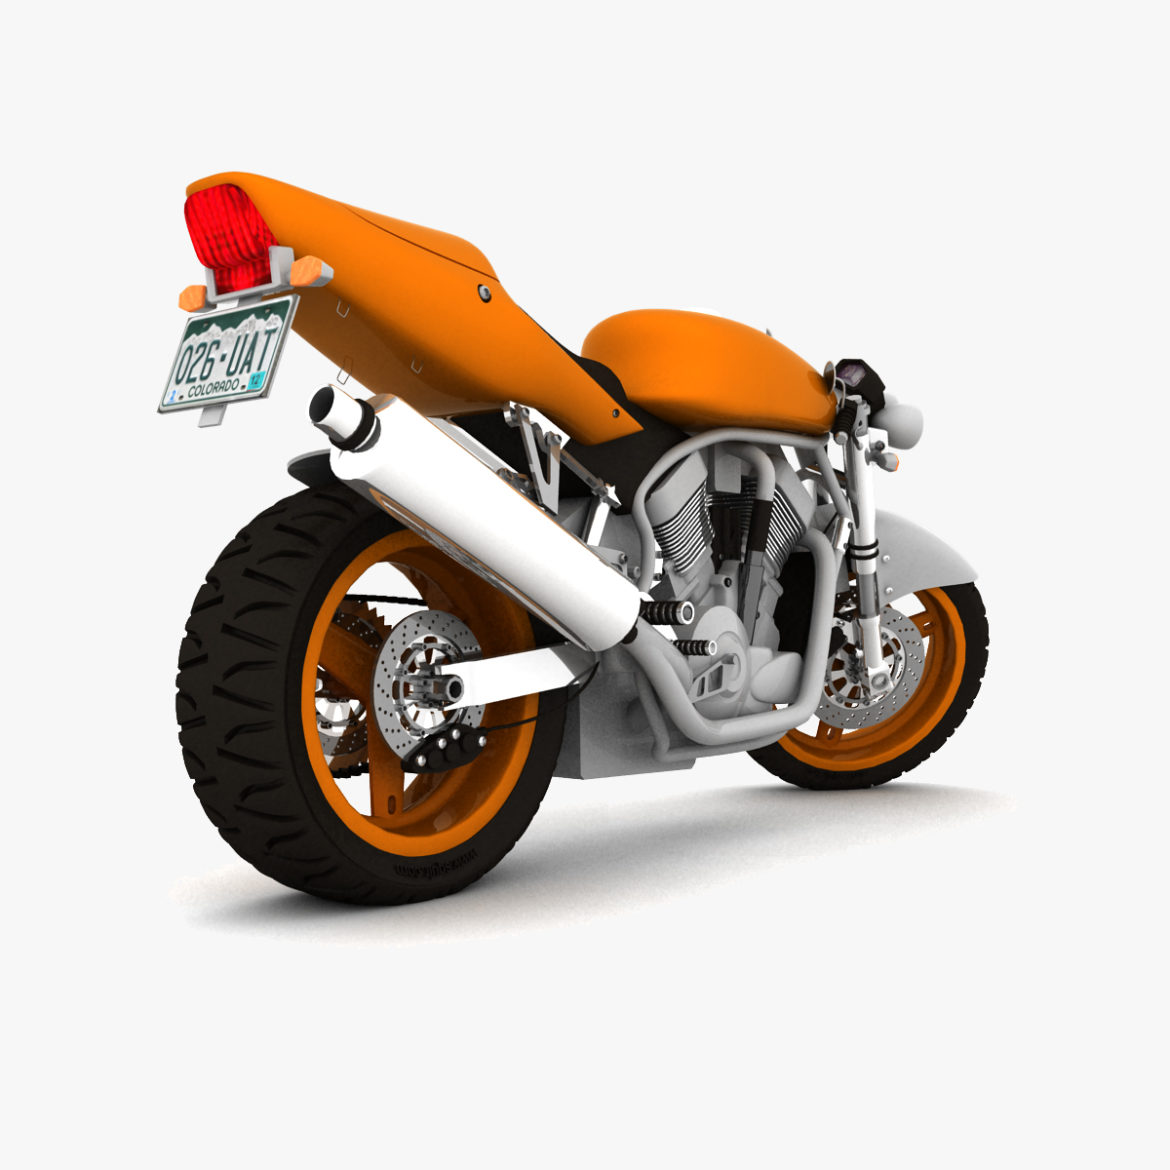 suzuki street fighter motorcycle 3d model 3ds max fbx obj 293873